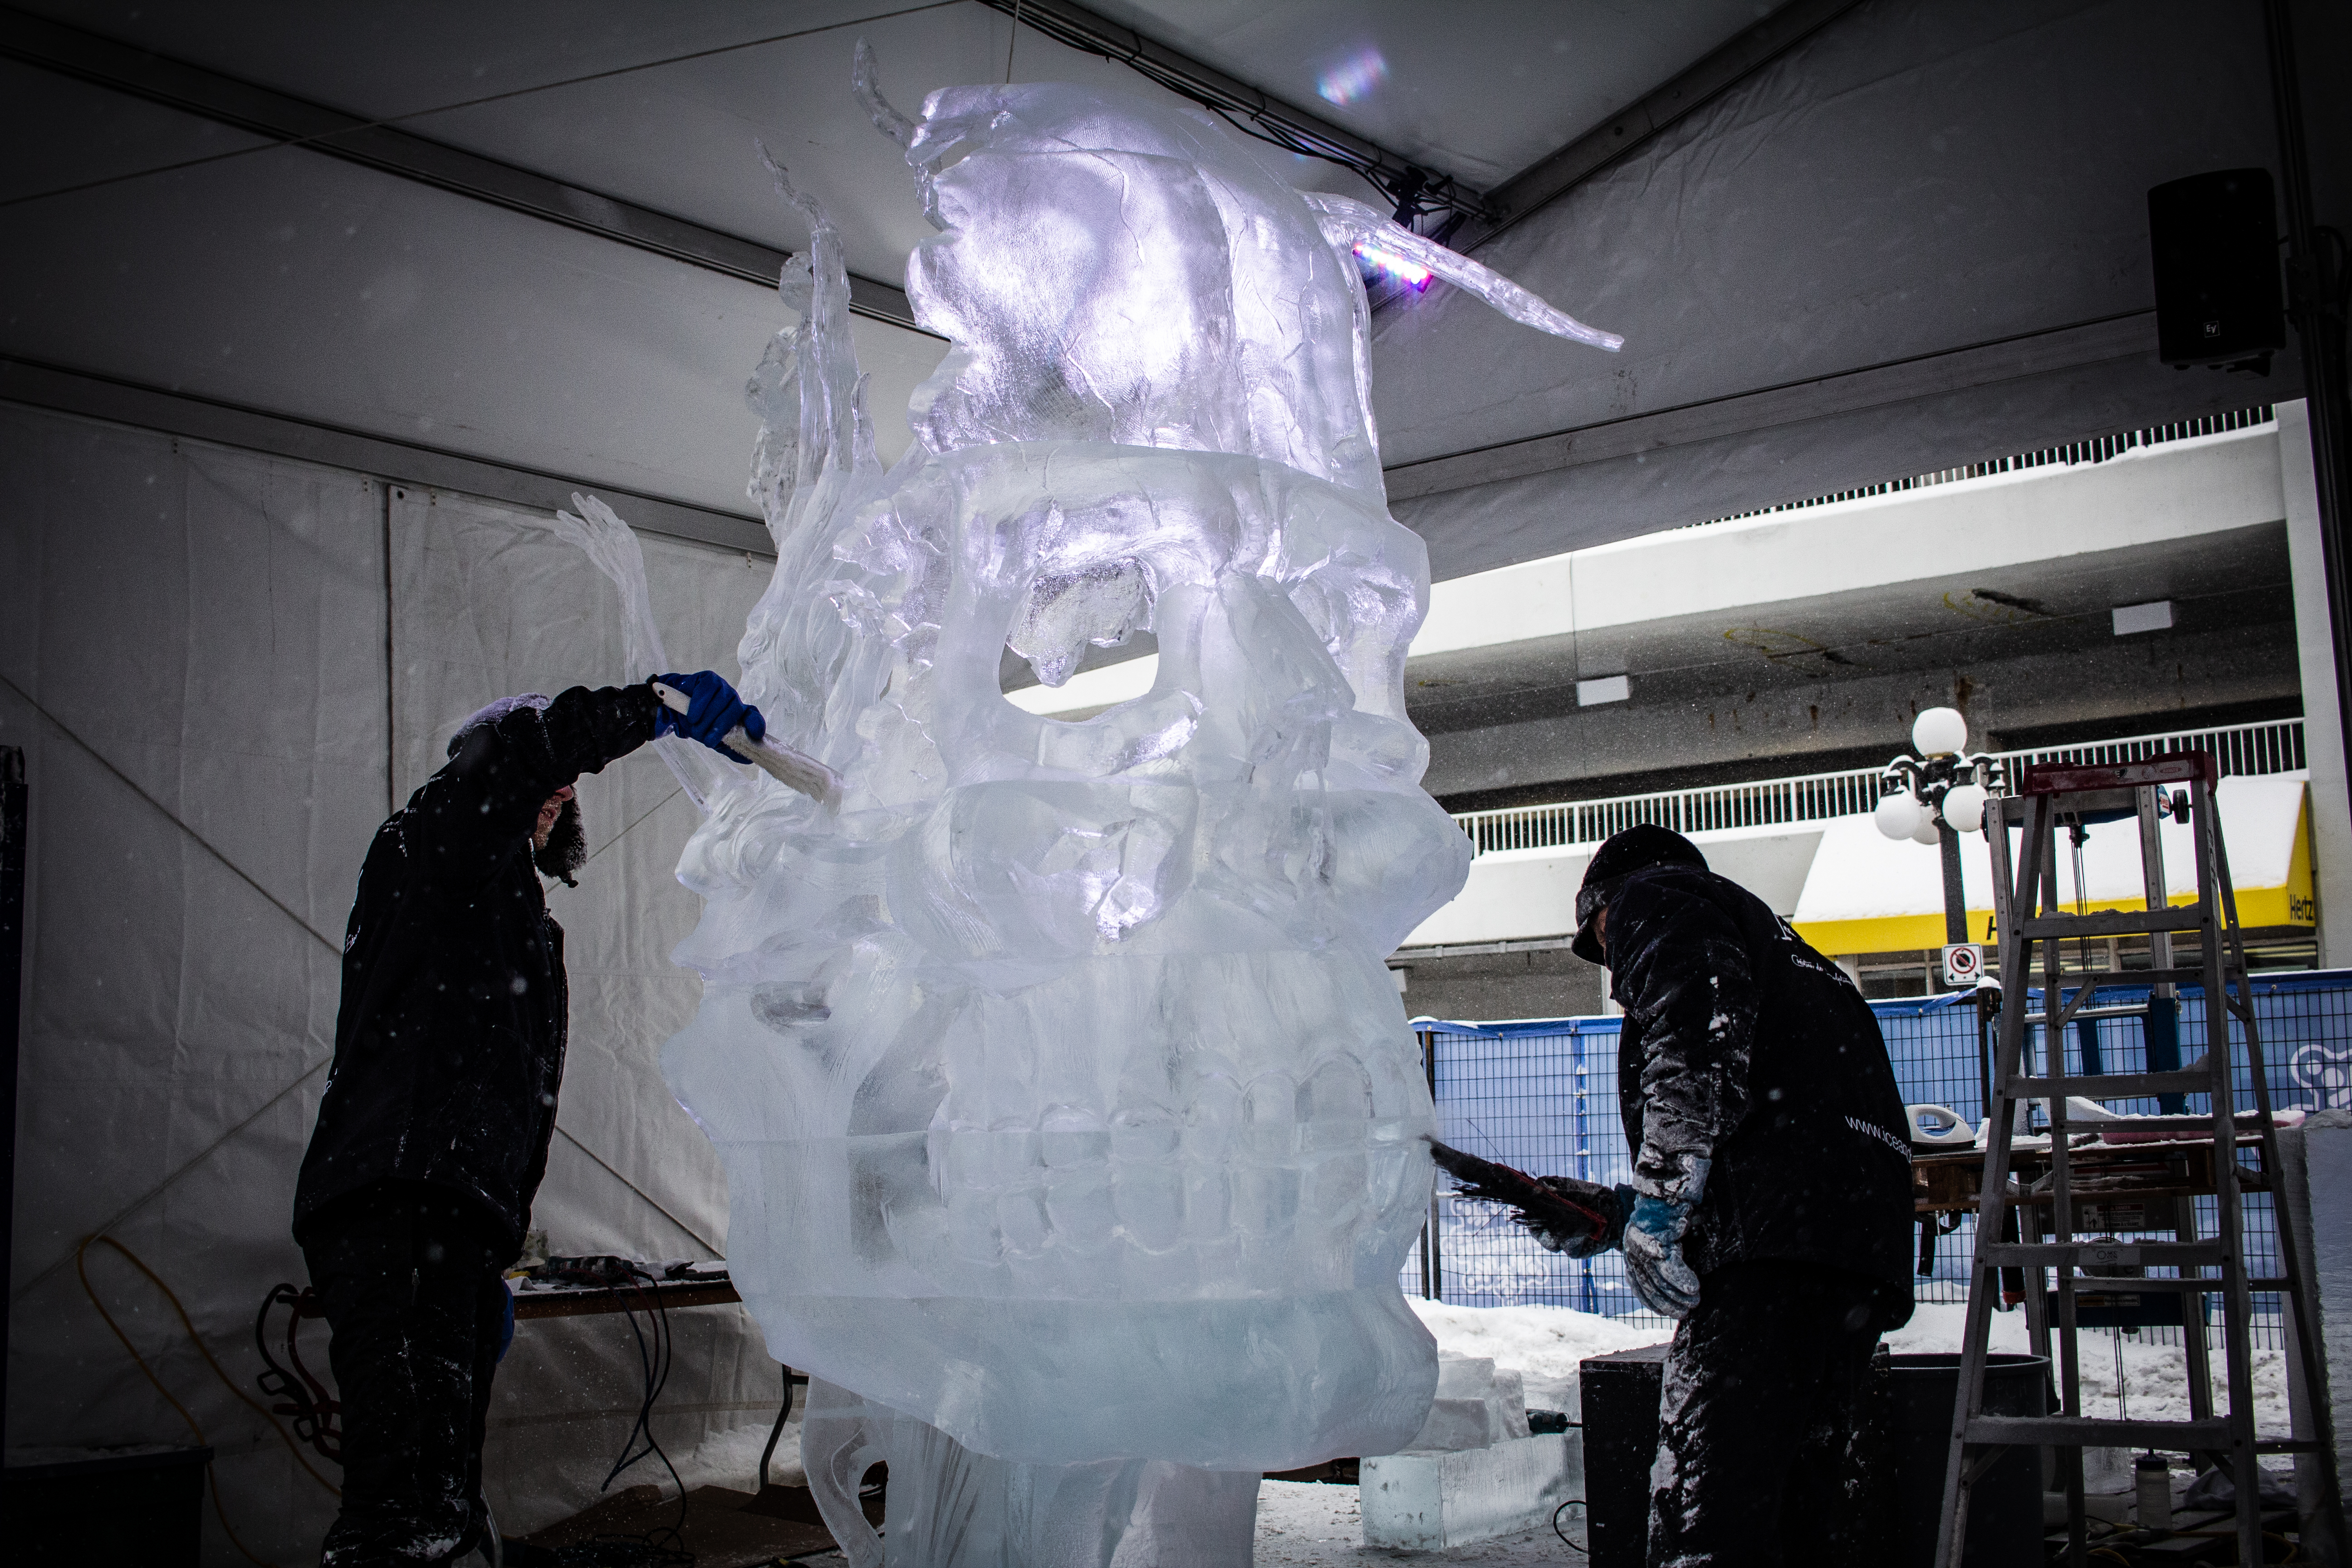 https://villagemedia.blob.core.windows.net/files/ottawamatters/images/events/winterlude-2019/img_0386.jpg